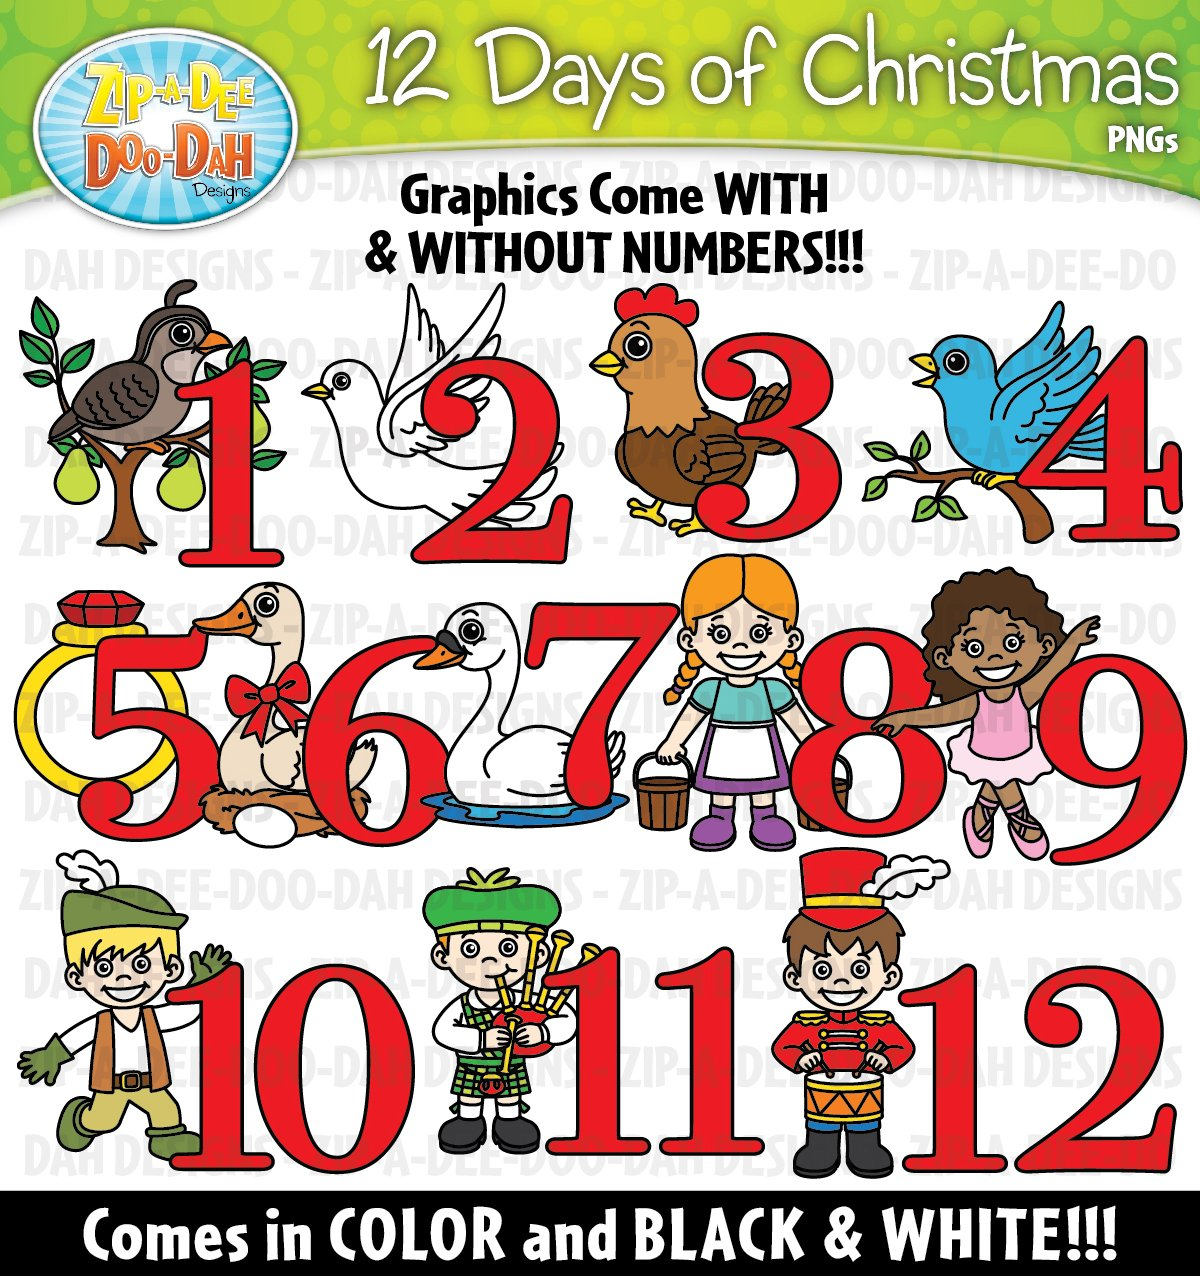 12 days of christmas clipart set graphics creative market